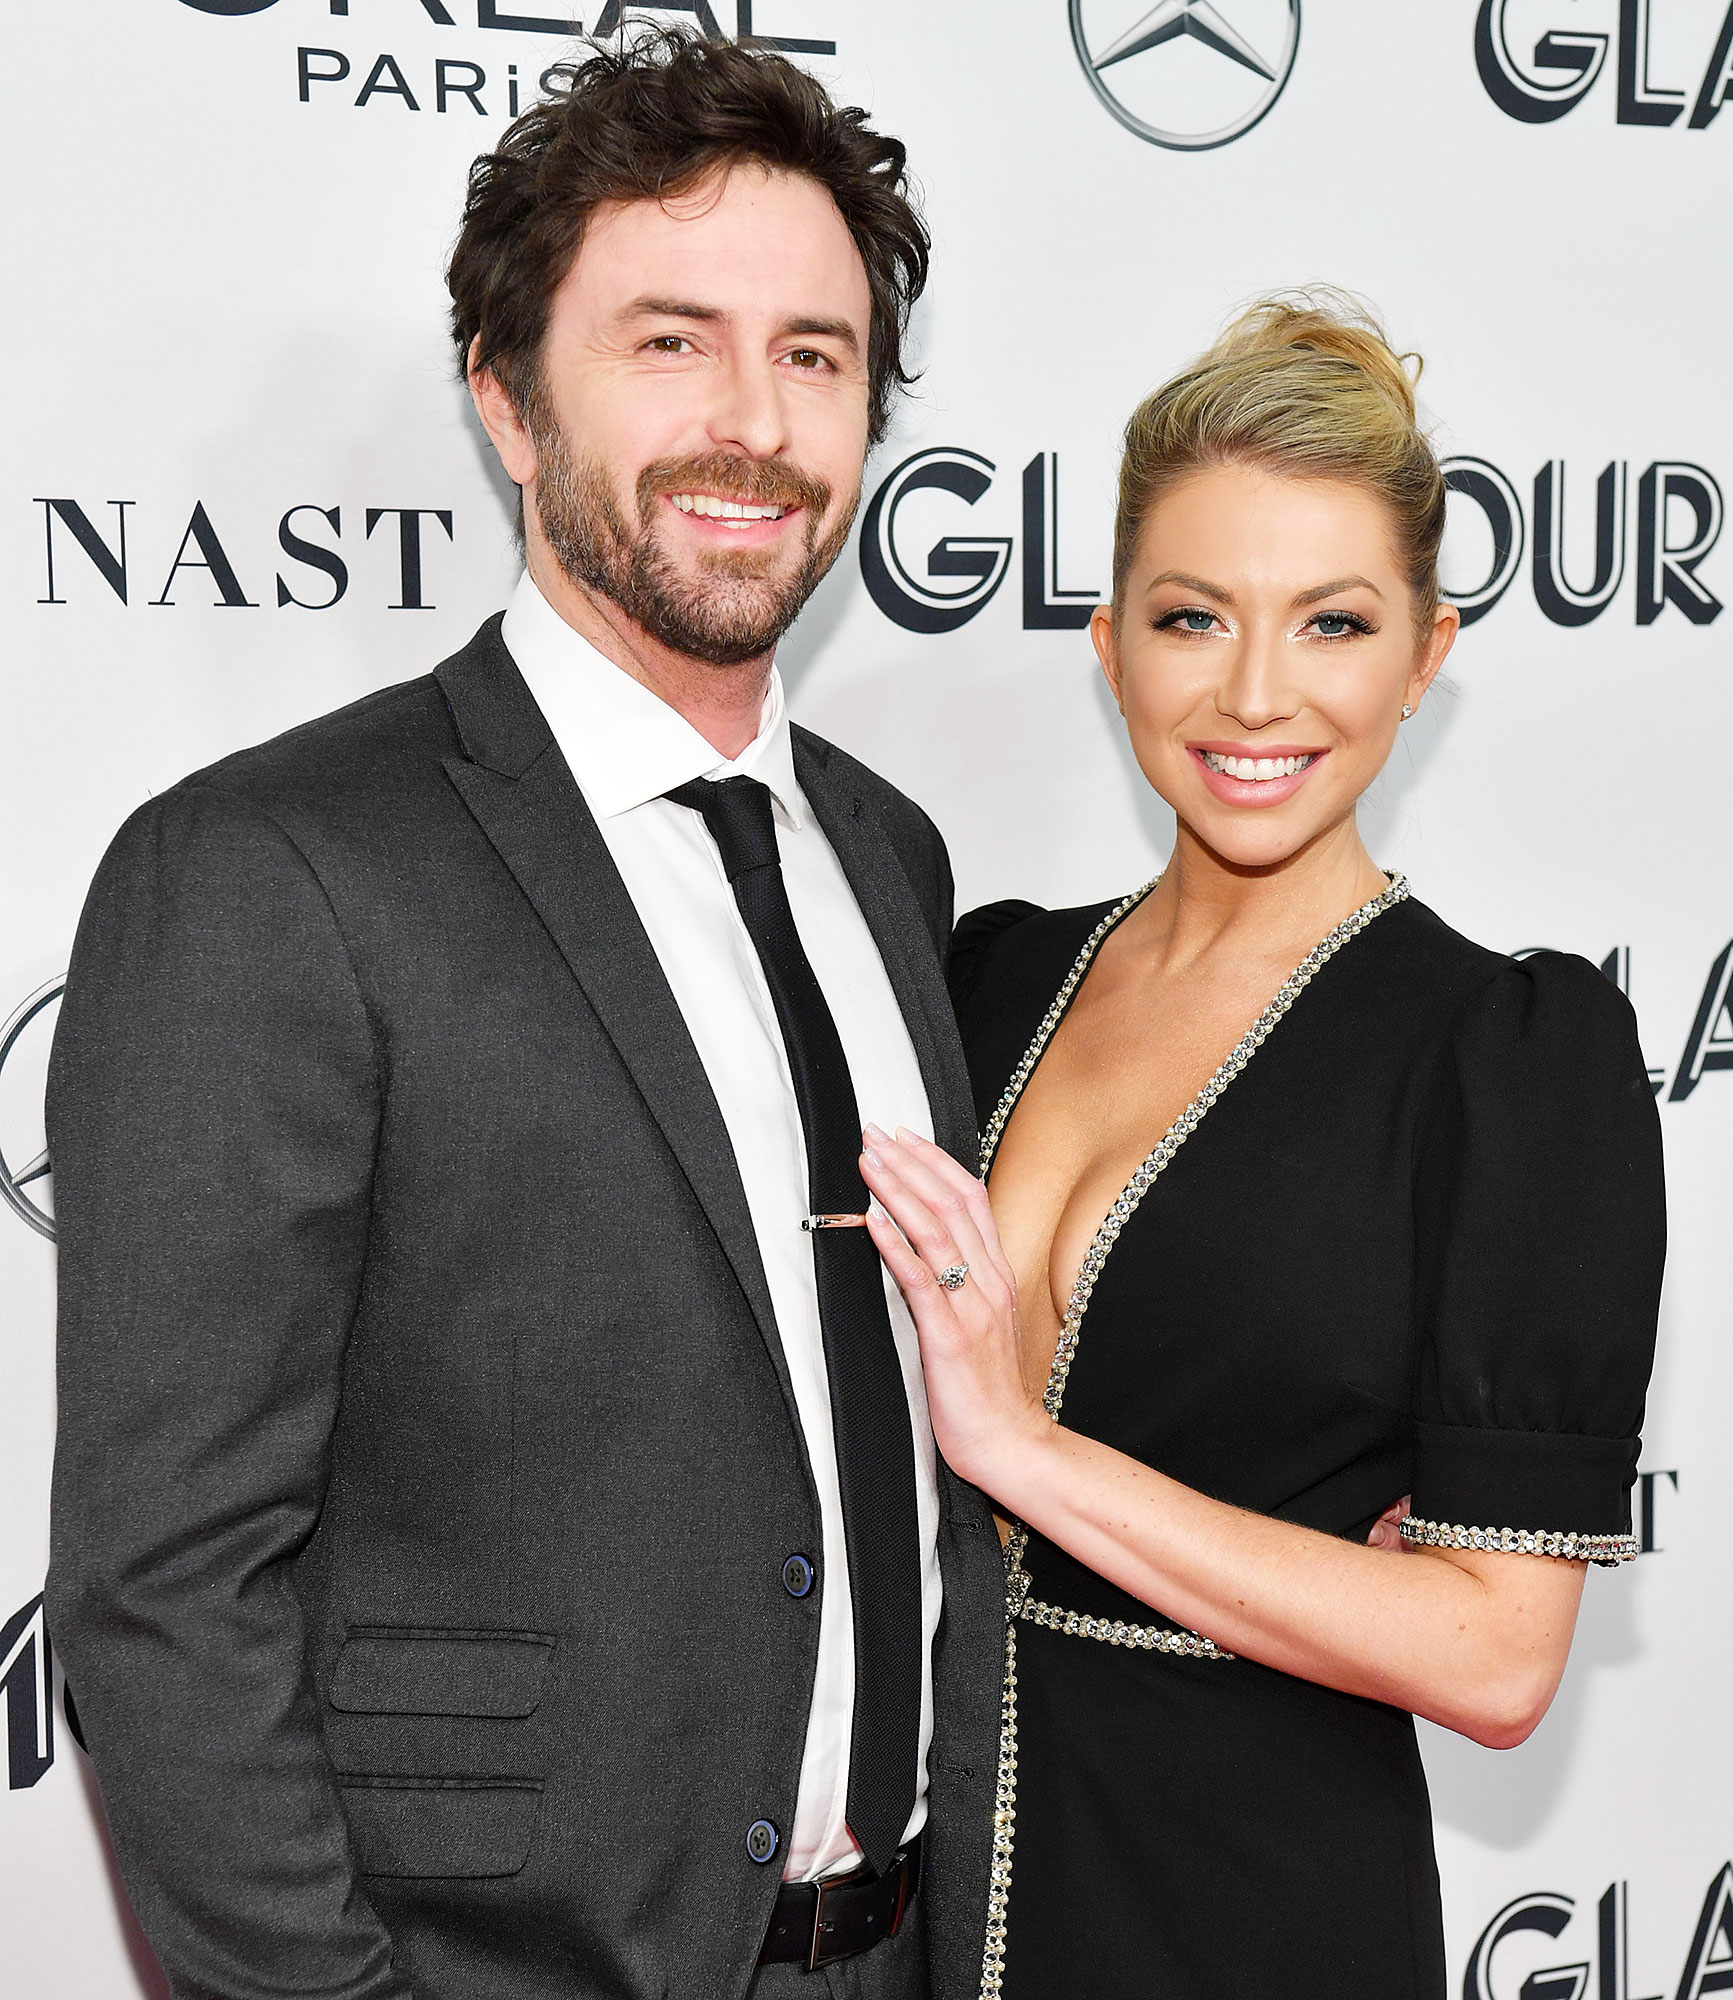 Beau Clark and Stassi Schroeder attend the Glamour Women of the Year Awards Stassi Schroeder Admits She and Beau Clark Were Trying for Baby Before Engagement